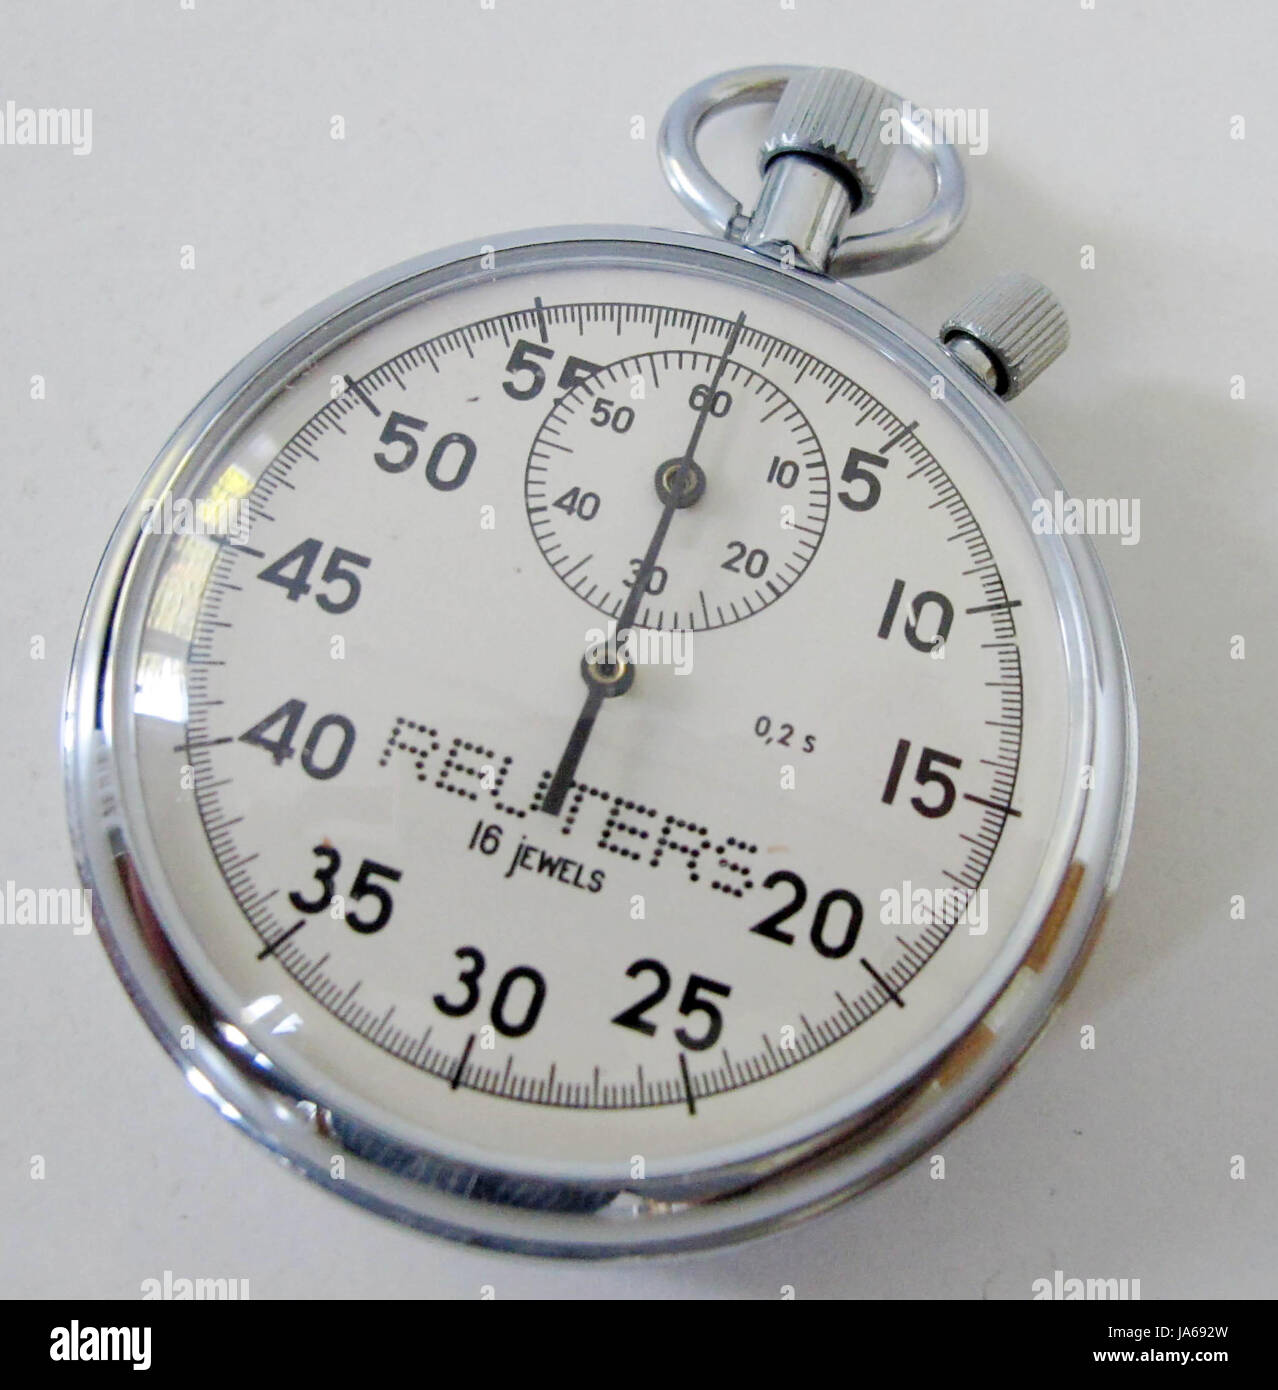 Traditional stopwatch, given by Reuters news agency - Stock Image